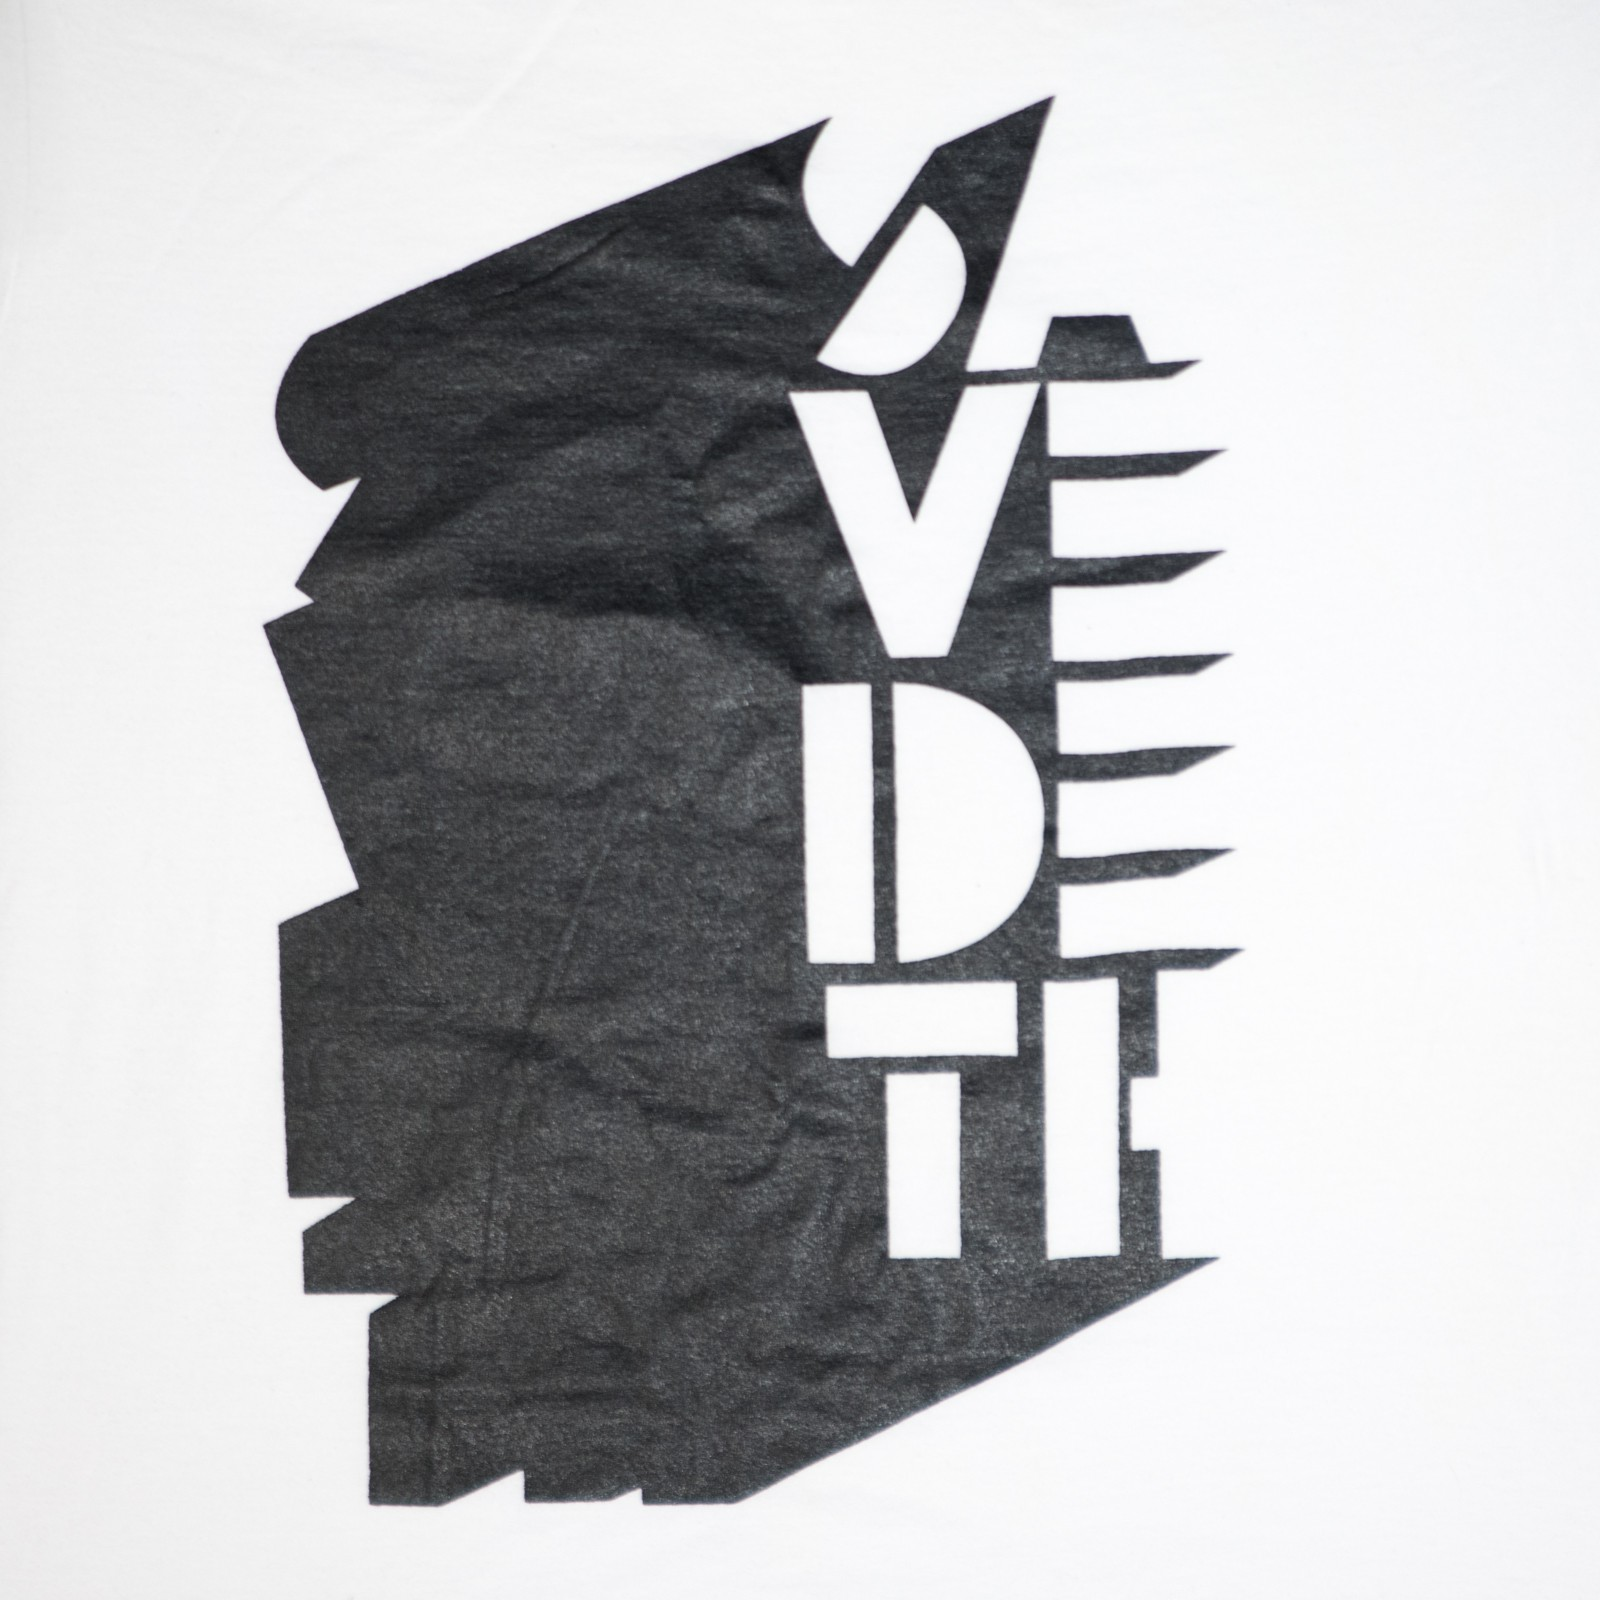 Implied / black on white (Size M) by Save Deth